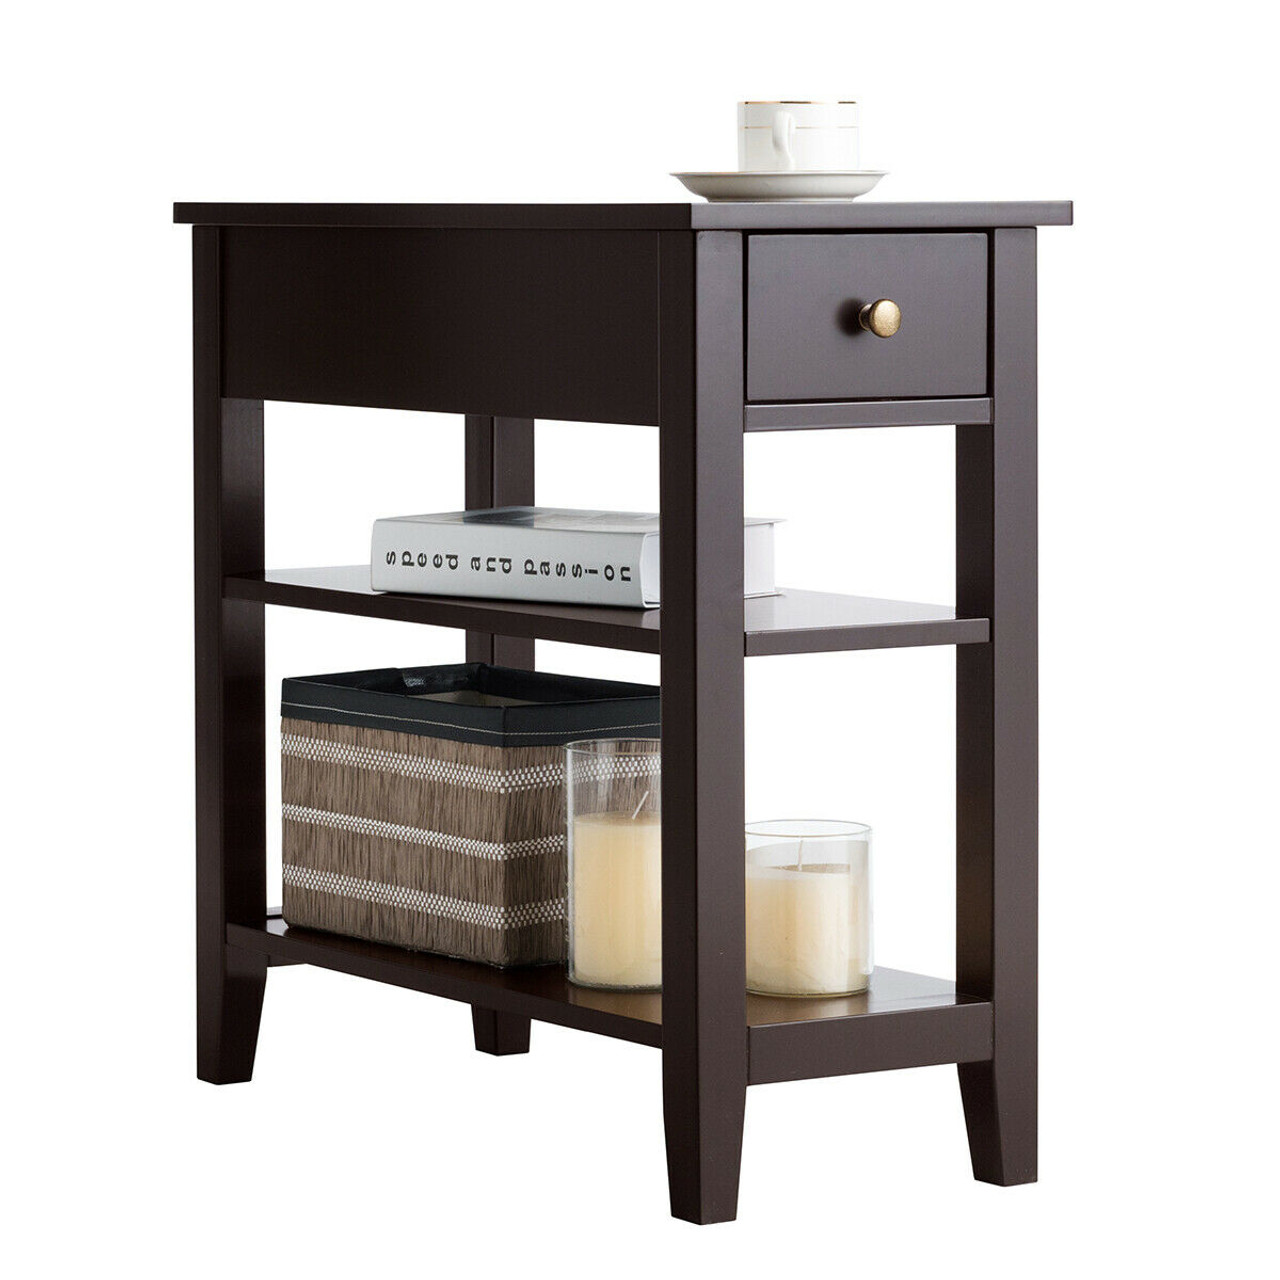 3 Tier Nightstand Bedside Table Sofa Side With Double Shelves Drawer Coffee Hw61591cf